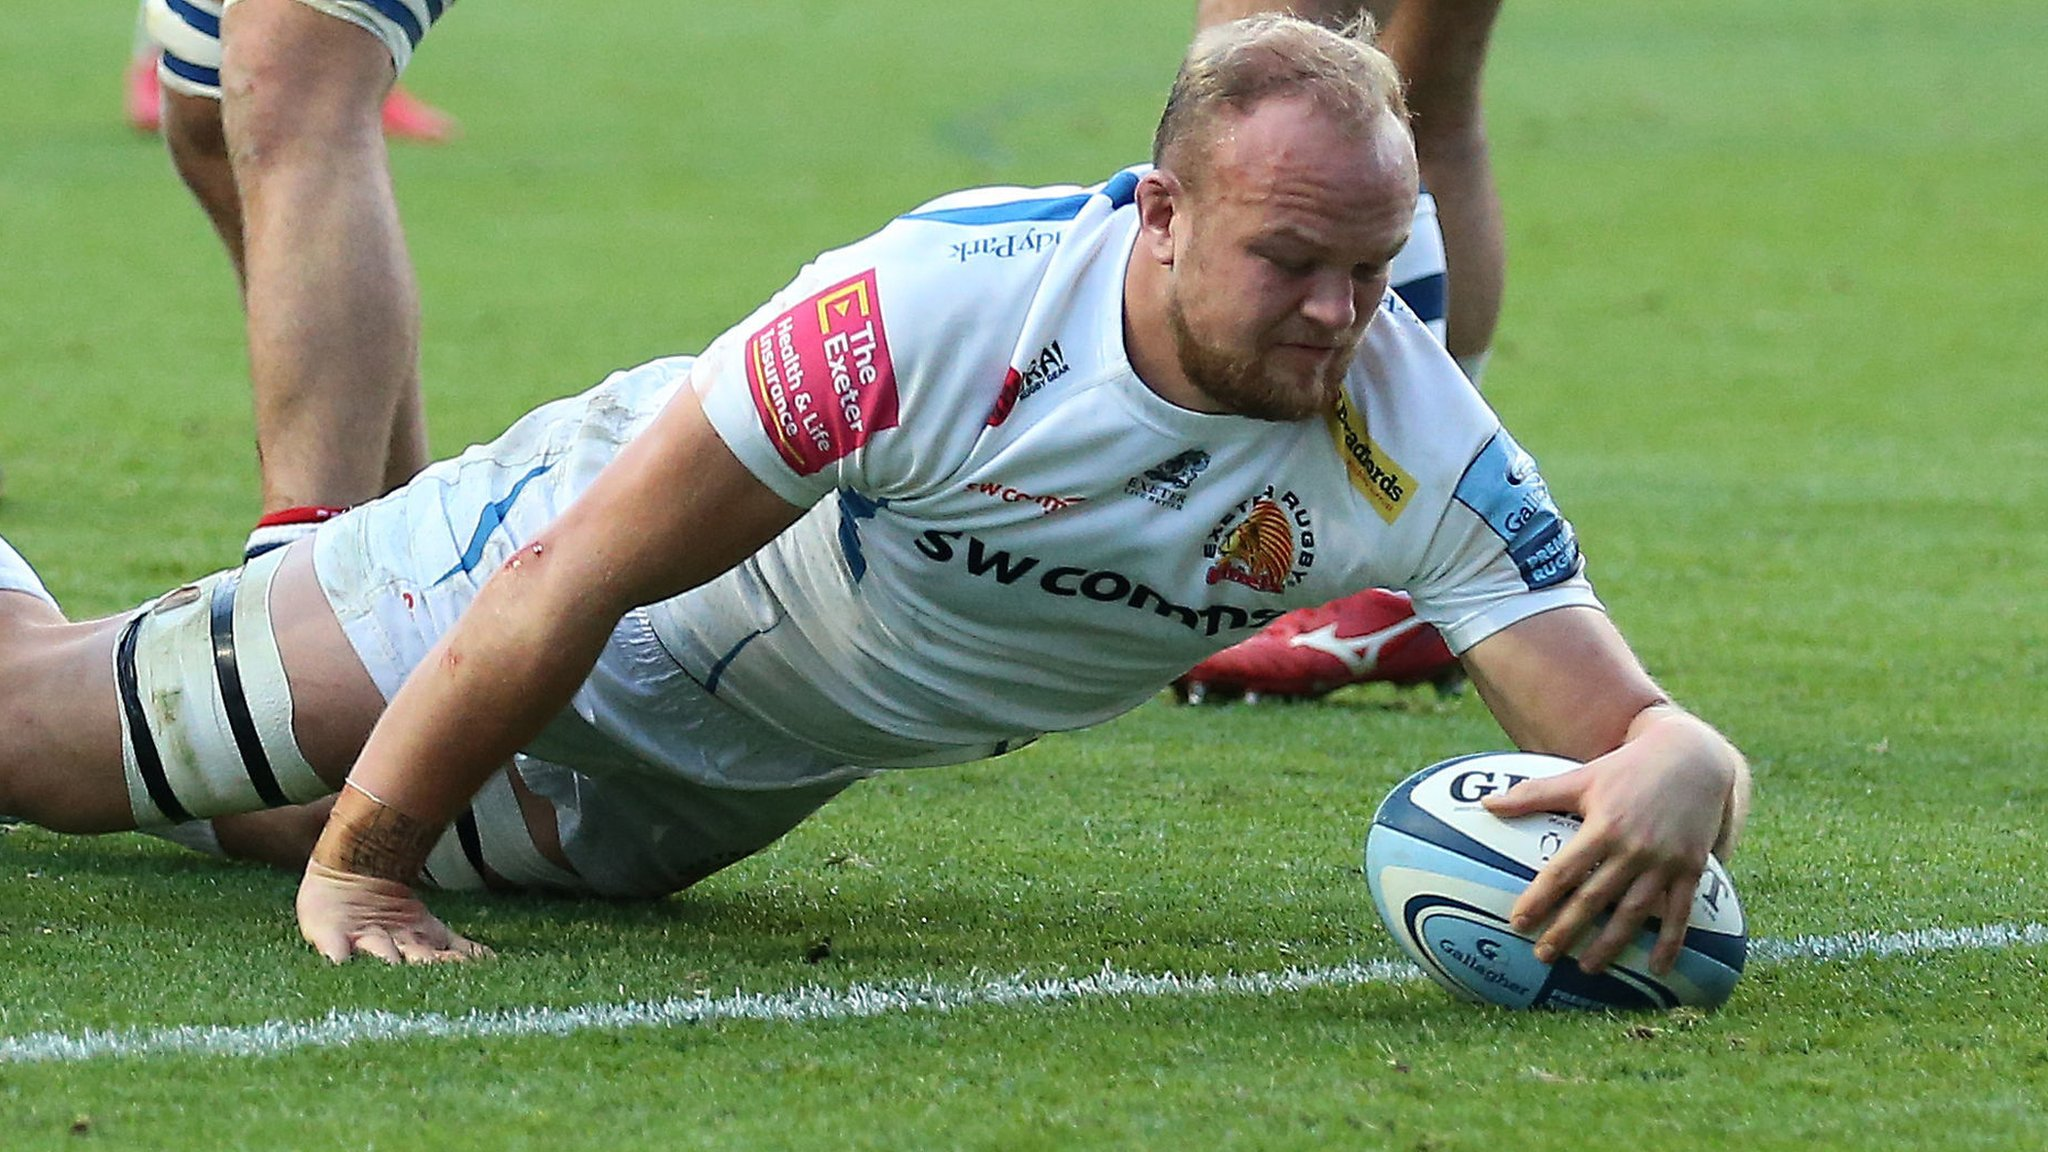 Premiership: Bristol Bears 29-31 Exeter Chiefs